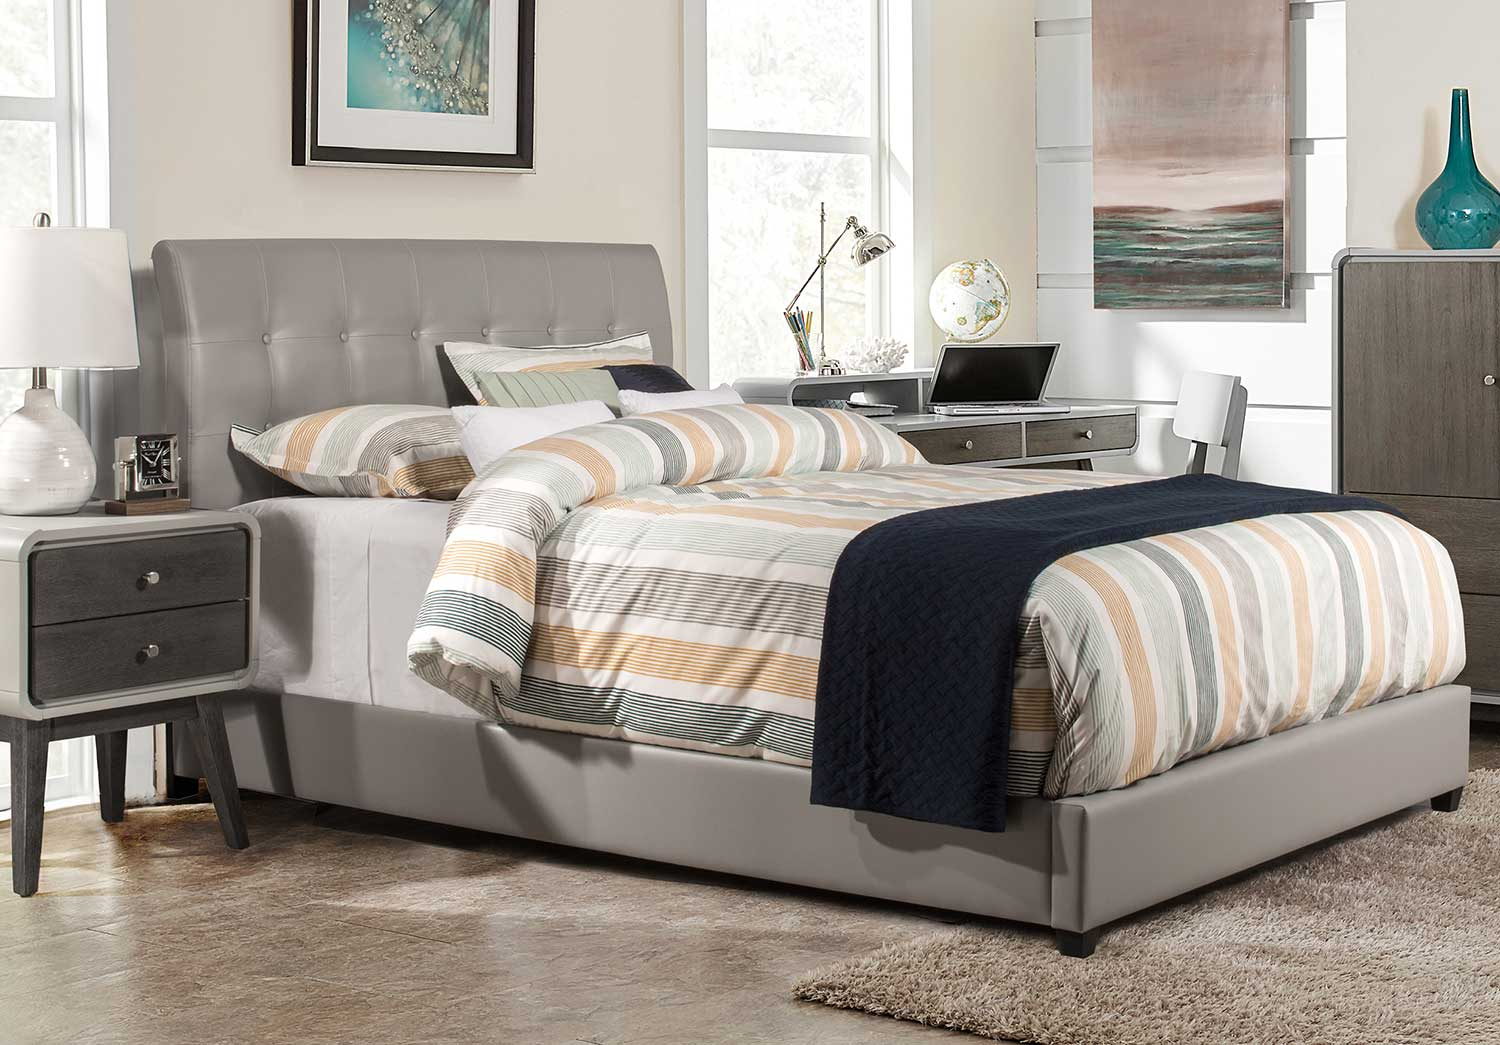 Hillsdale Lusso Bed - Gray Faux Leather